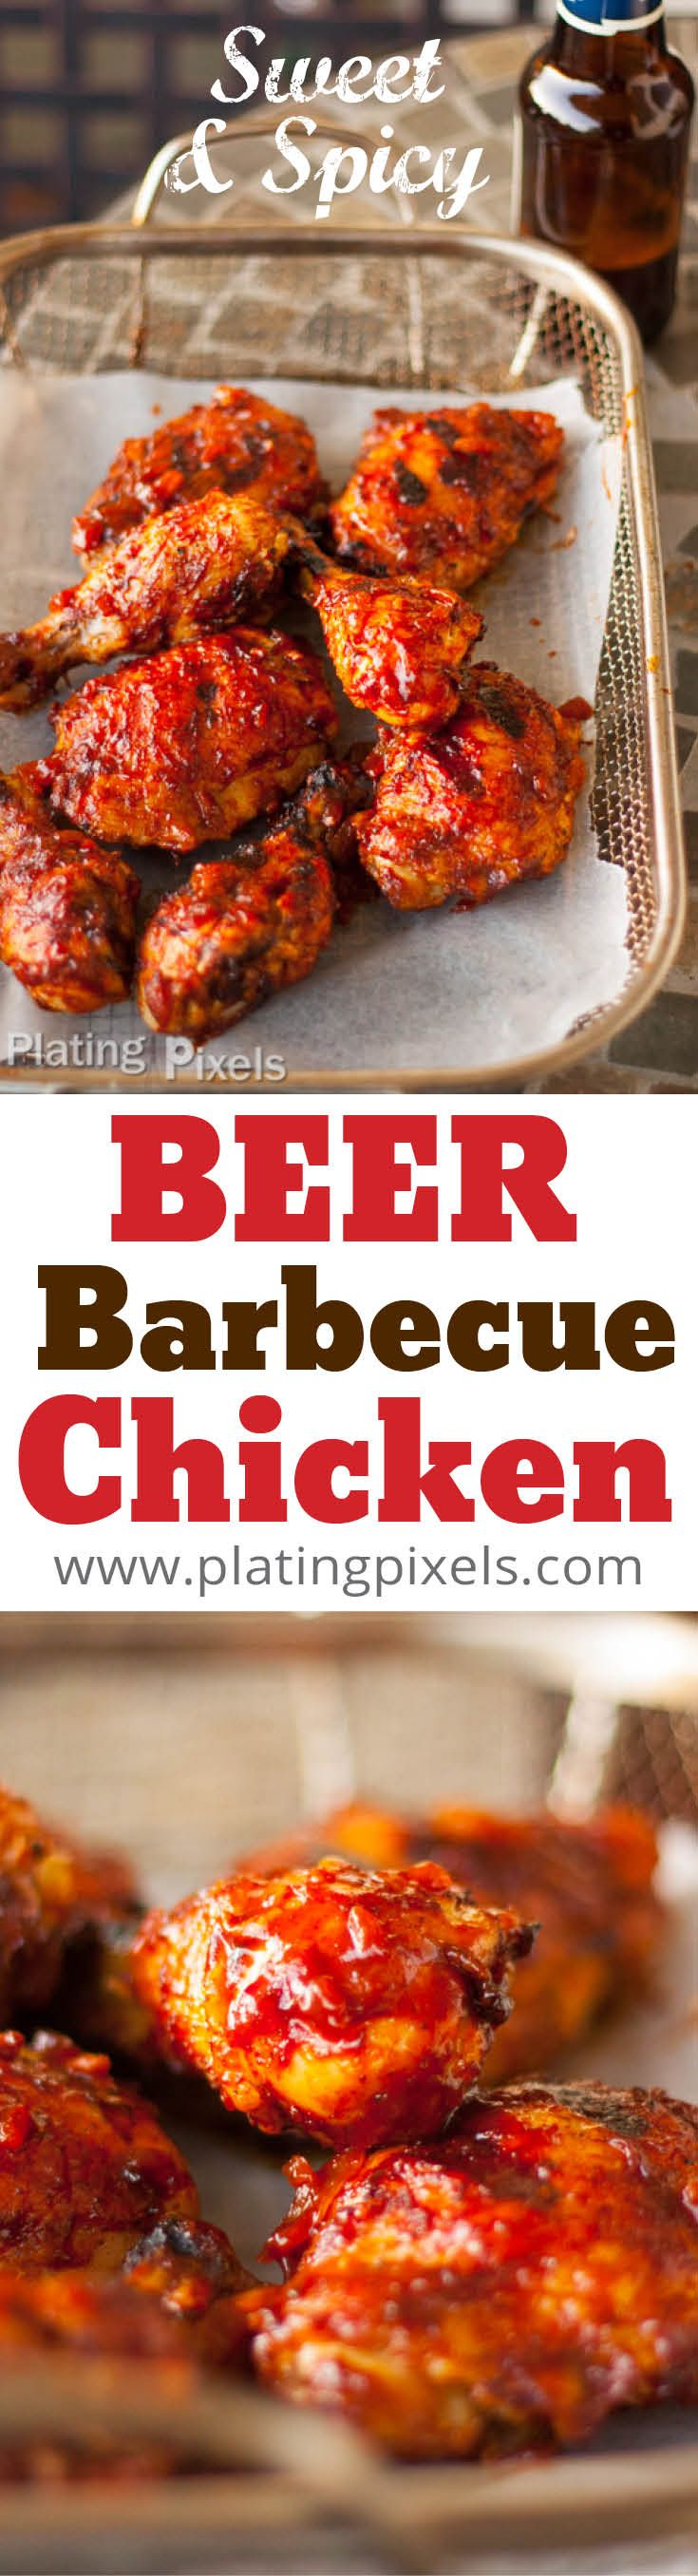 Sweet and Spicy Beer Barbecue Chicken by Plating Pixels. Beer barbecue chicken with sweetness and just the right amount of spicy flavor. Juicy, tender chicken that is beautifully coated with a rich, moist sauce (gluten-free). - www.platingpixels.com